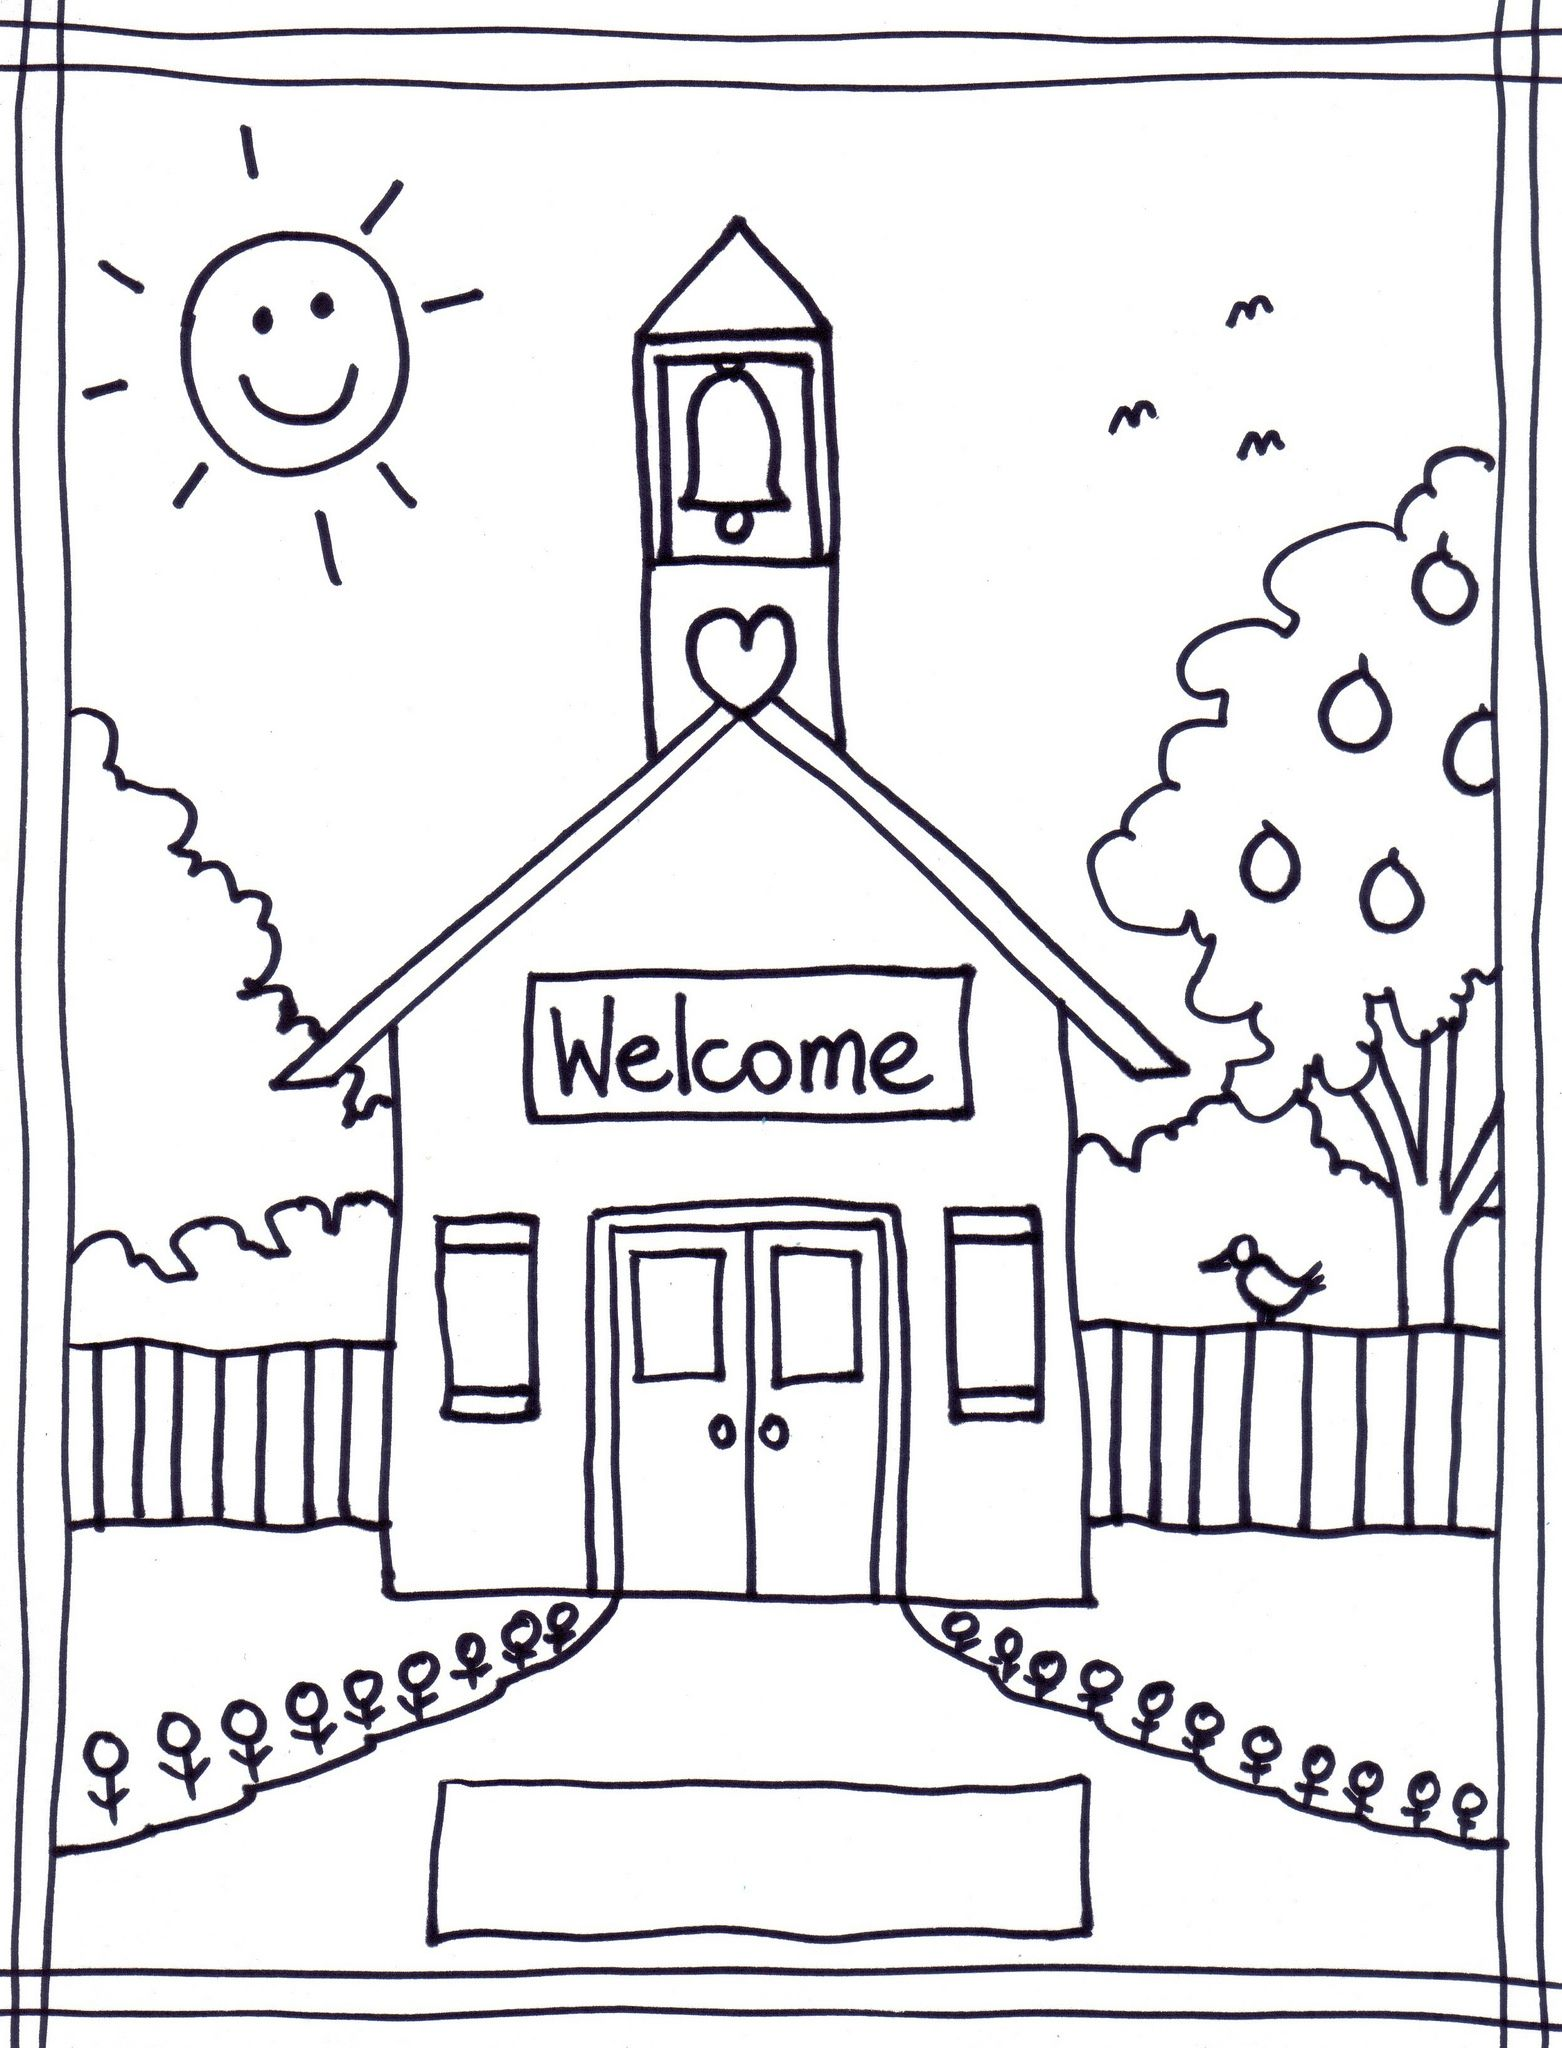 Coloring pages for kindergarten graduation - Back To School Coloring Pages Free Printables Image 22